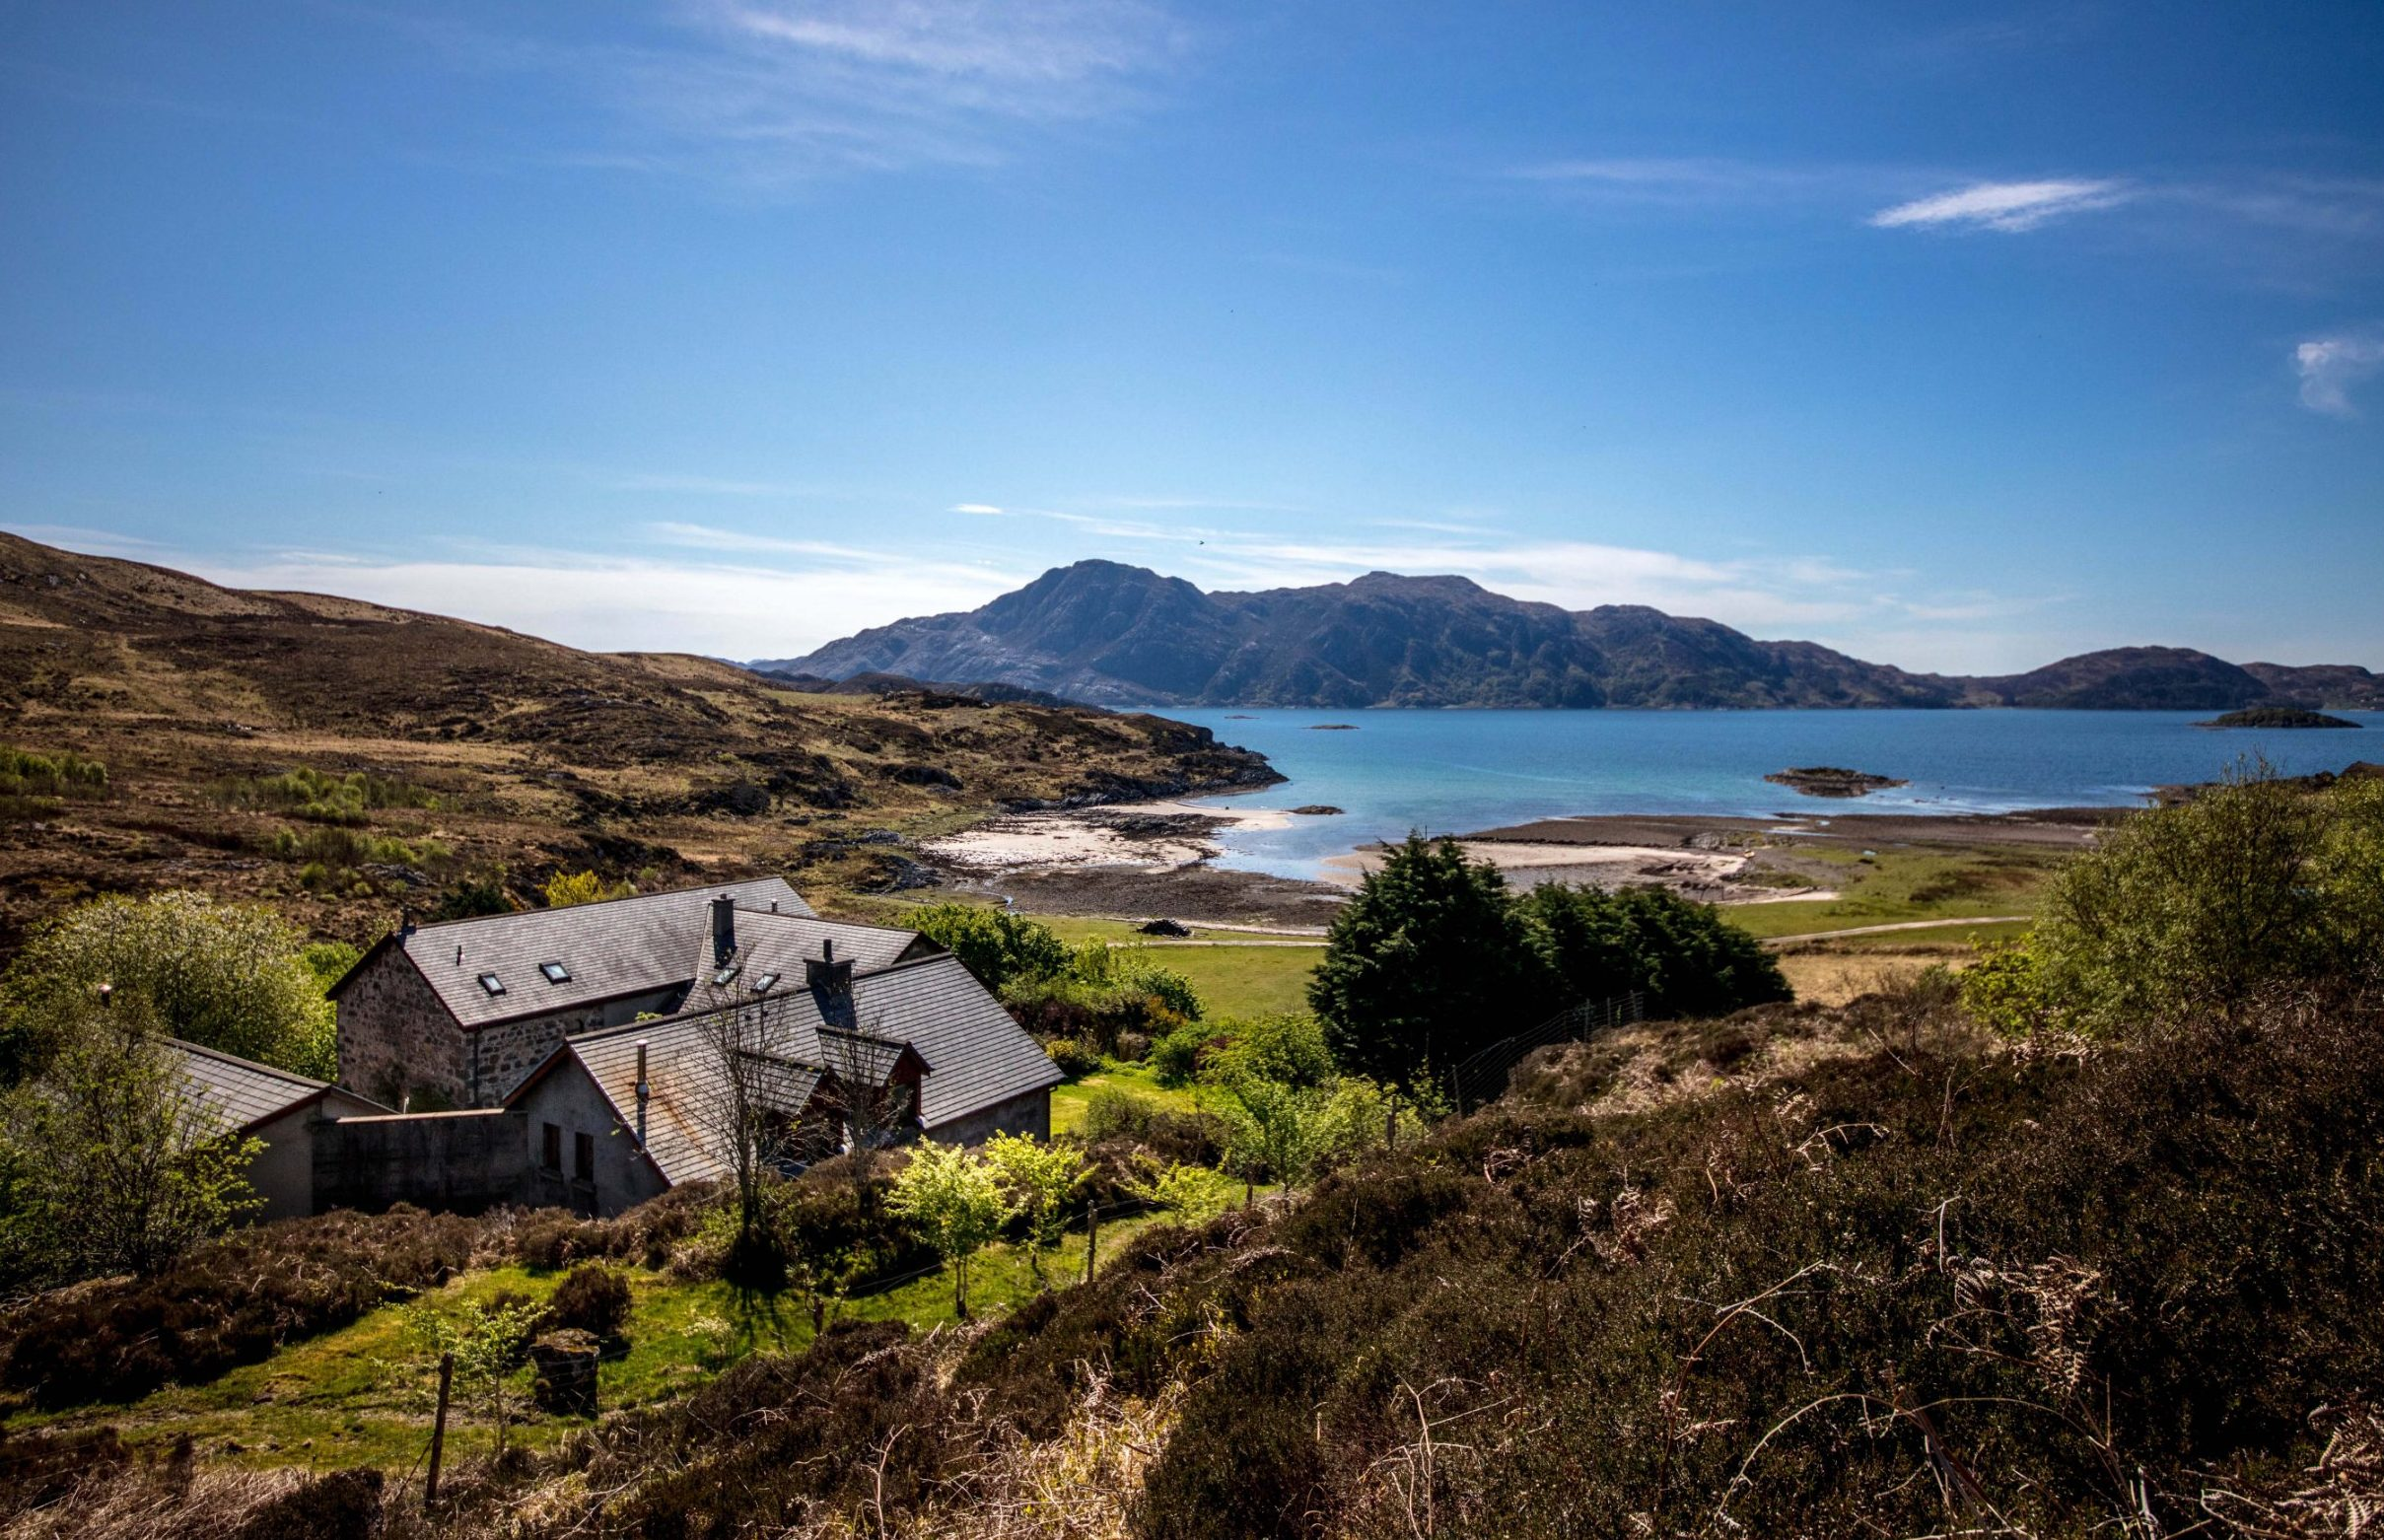 BNPS.co.uk (01202 558833) Pic : Savills/BNPS The ultimate getaway... A Scottish retreat that is surrounded by its own 105-acre estate and has a private beach - on the market for ?750,000 - is the perfect haven for those looking to escape the rat race. It would be difficult to find a more secluded home than Sandaig House on the Knoydart Peninsula, which has a breathtaking outlook over Loch Nevis. The peninsula is often described as 'Britain's last wilderness' and can only be accessed by boat from Mallaig or a 16-mile walk through rough country. Sandaig House come with a private bay, perfect for setting off sailing or sea fishing, which even has white sands at low tide.